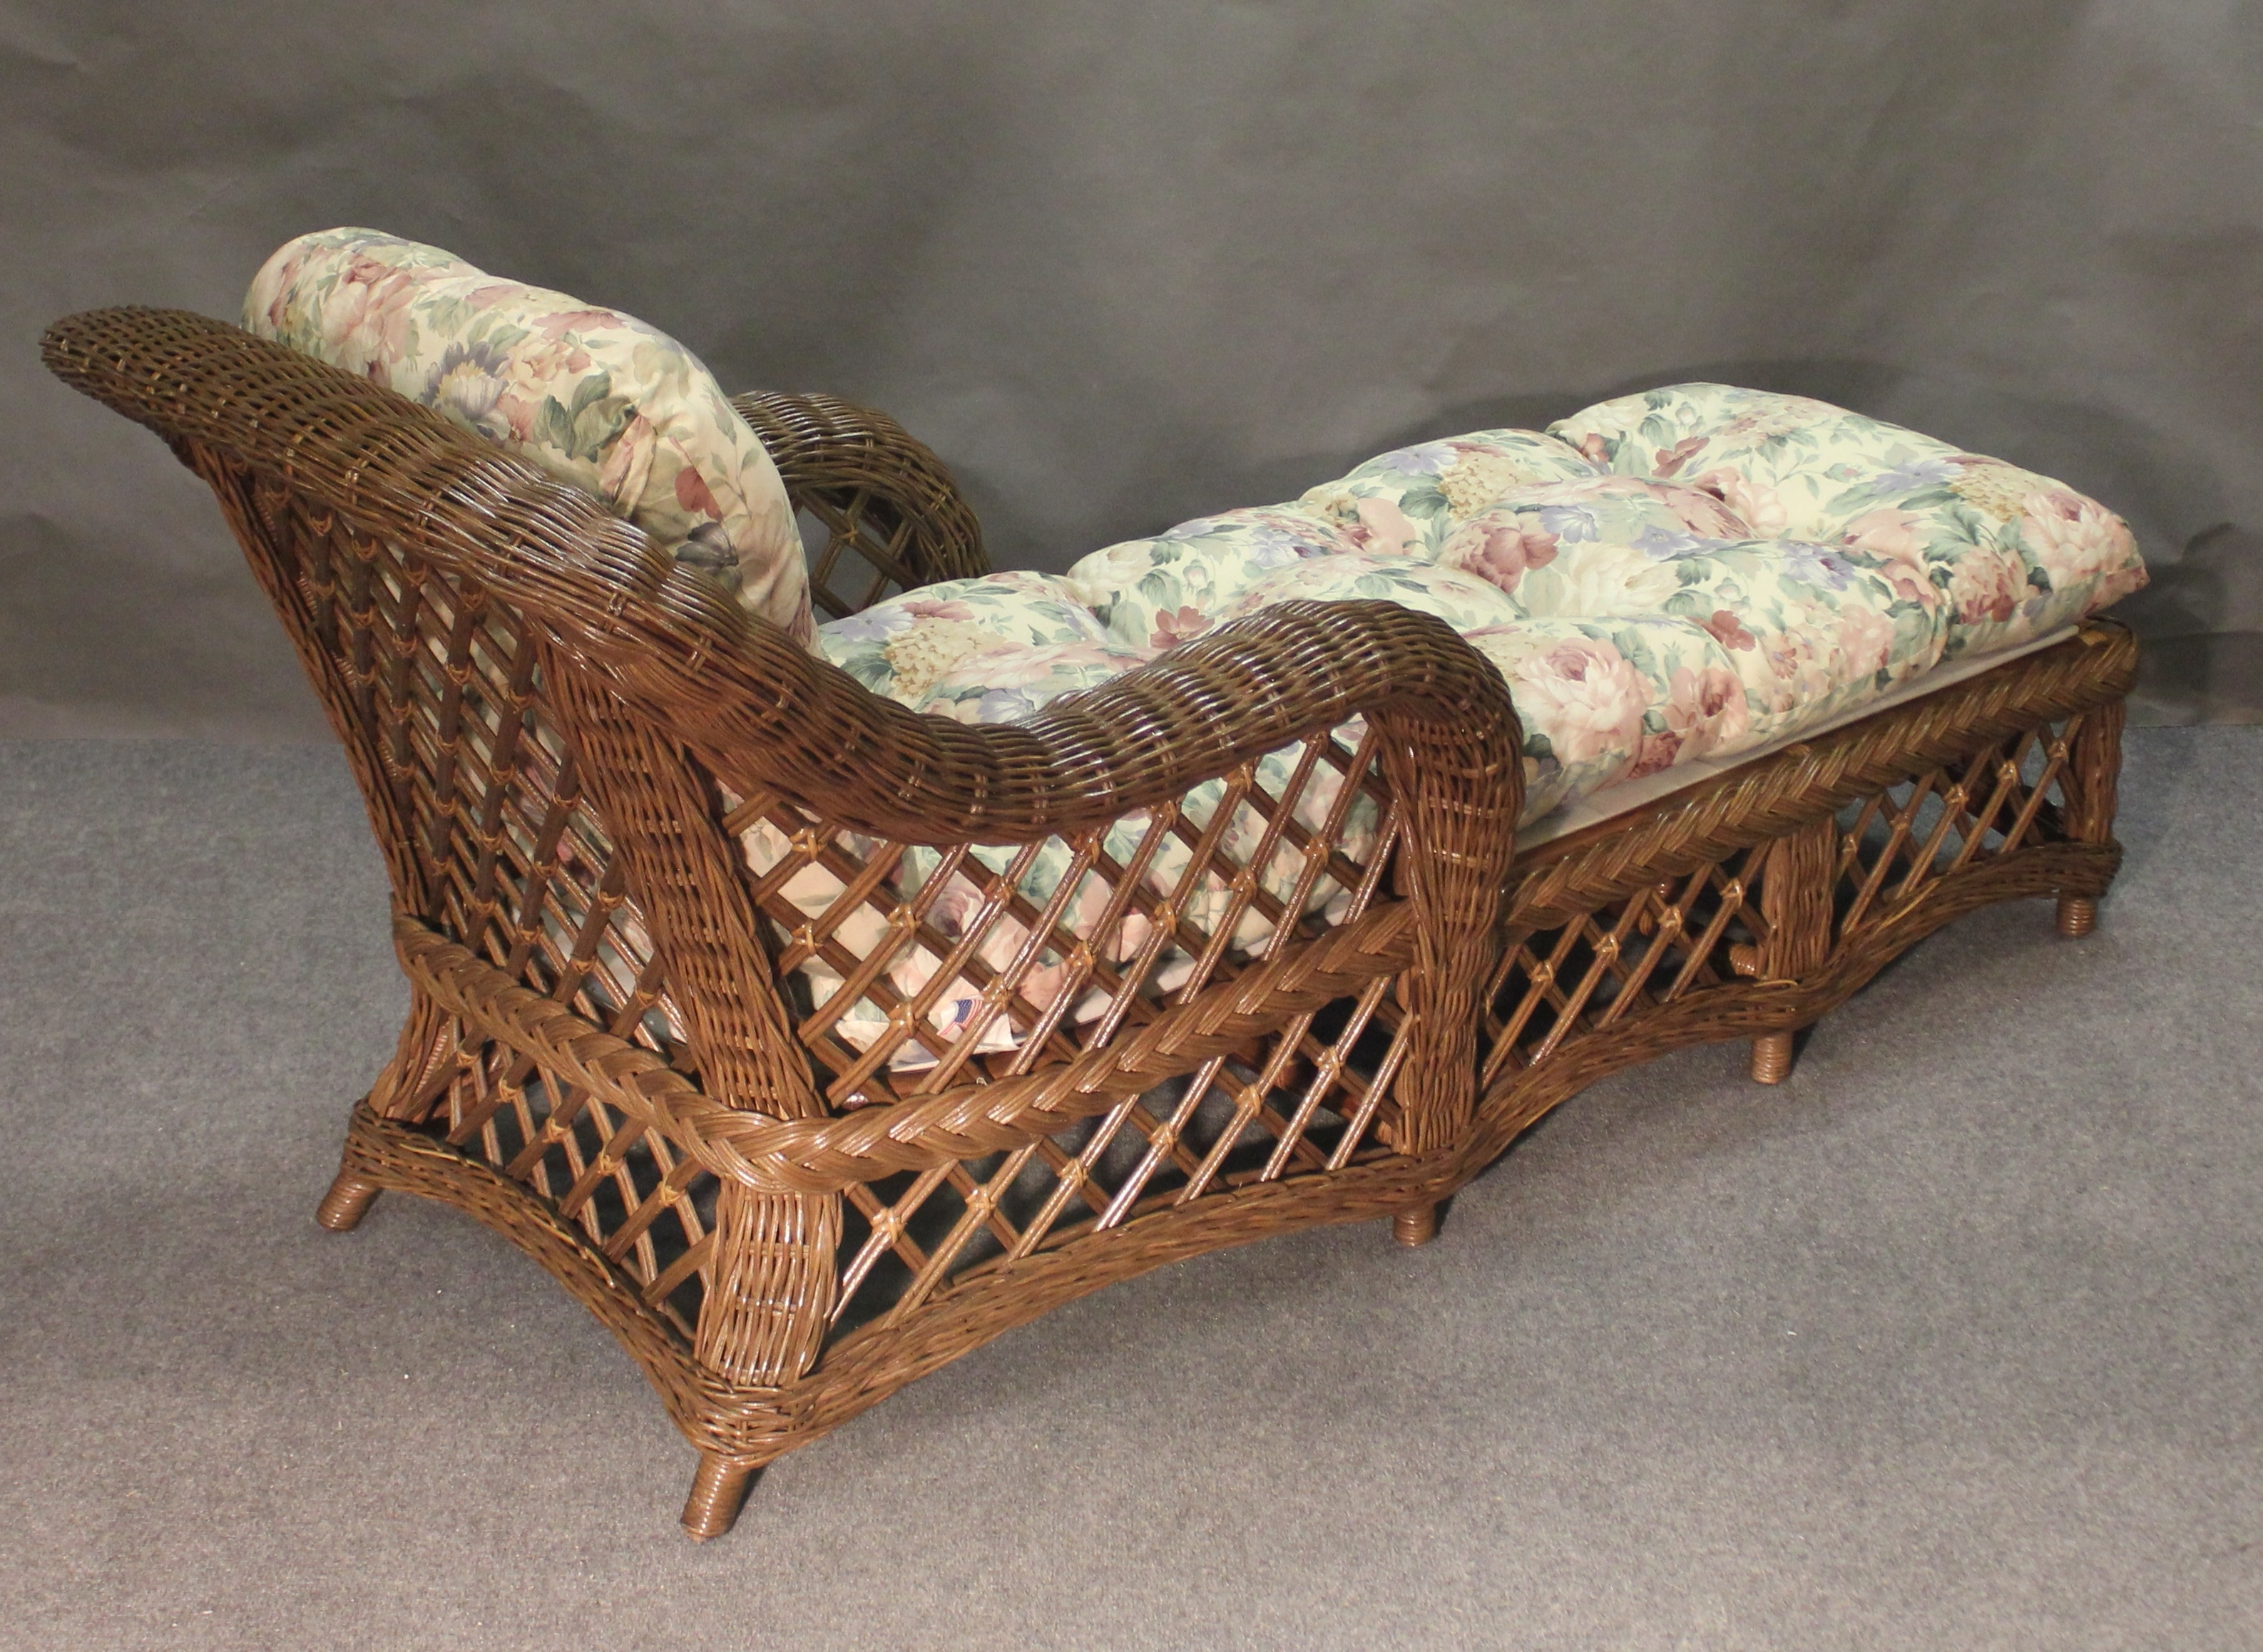 Outdoor Wicker Chaise Lounges Pertaining To Widely Used Cape Cod Wicker Chaise Lounge, All About Wicker (View 13 of 15)